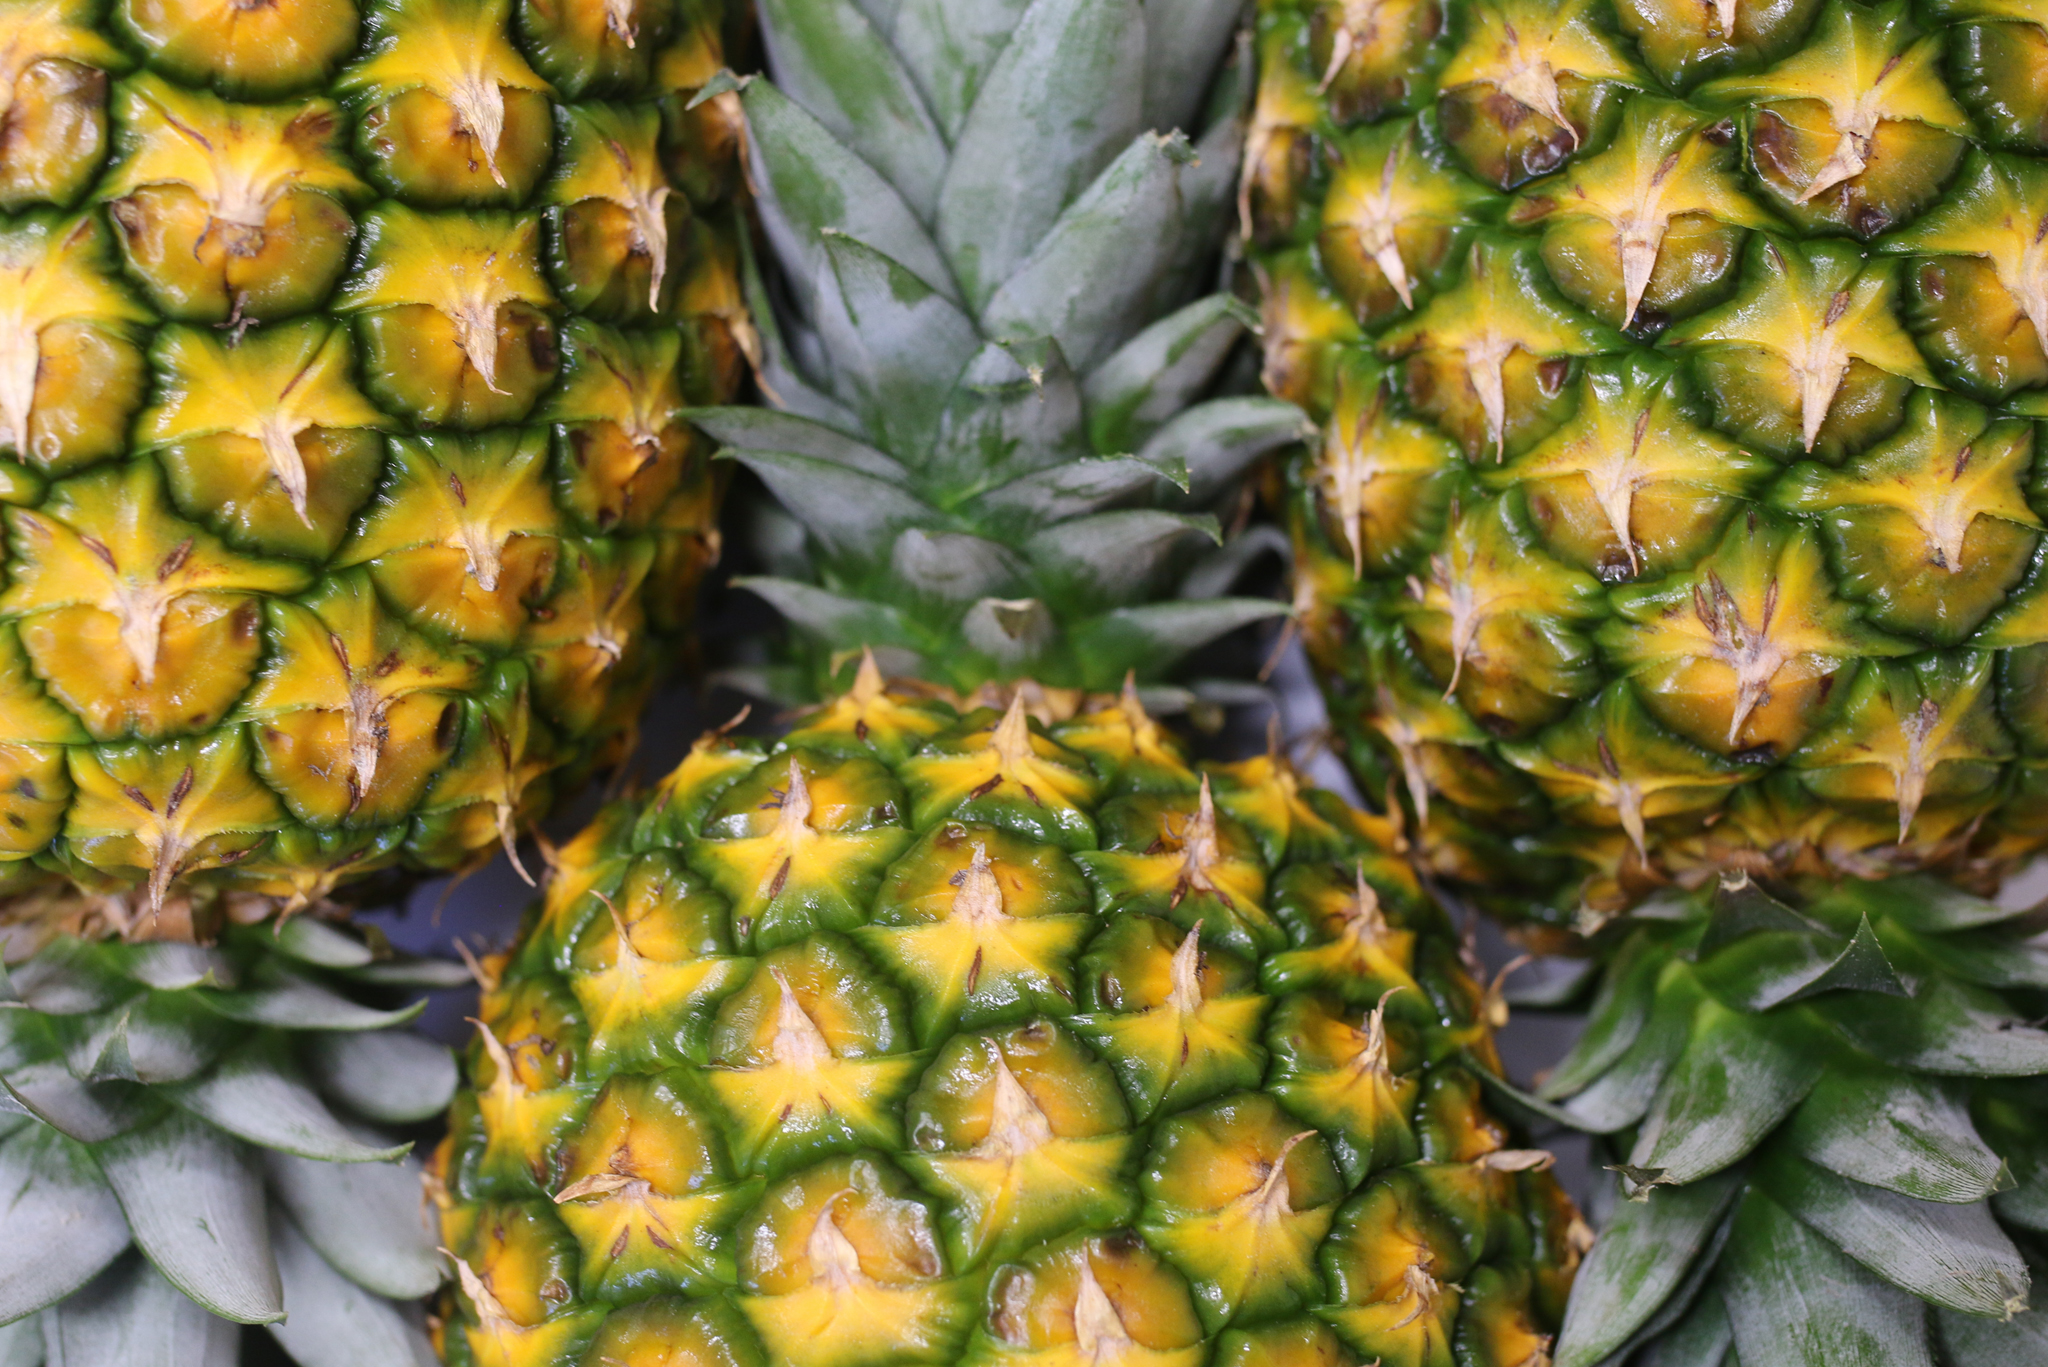 Distributor of Fresh Pineapples